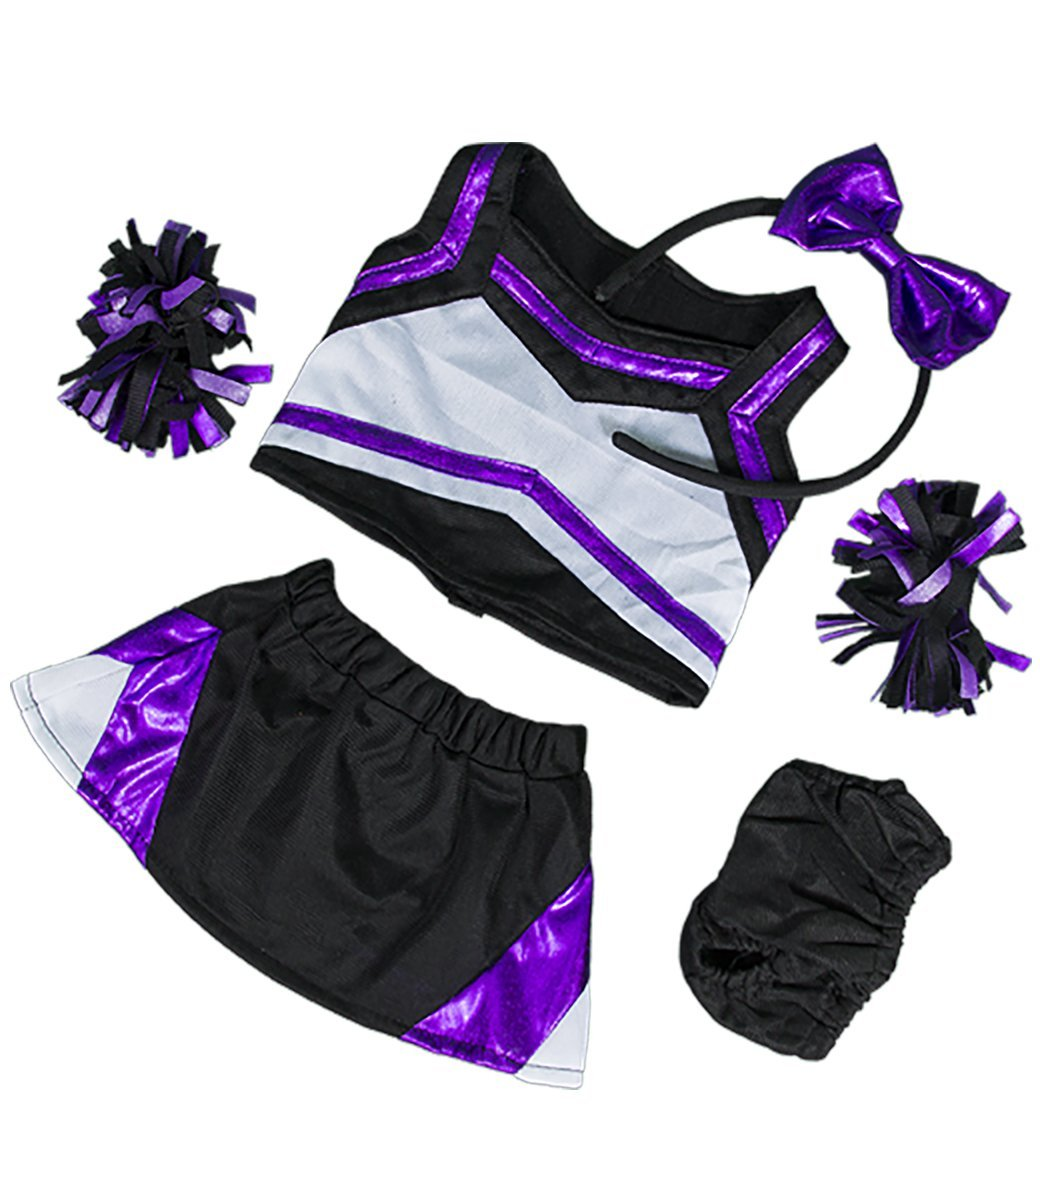 "Metallic Purple & Black Cheerleader Teddy Bear Clothes Outfit Fits Most 14"" 18""... by Teddy Mountain"